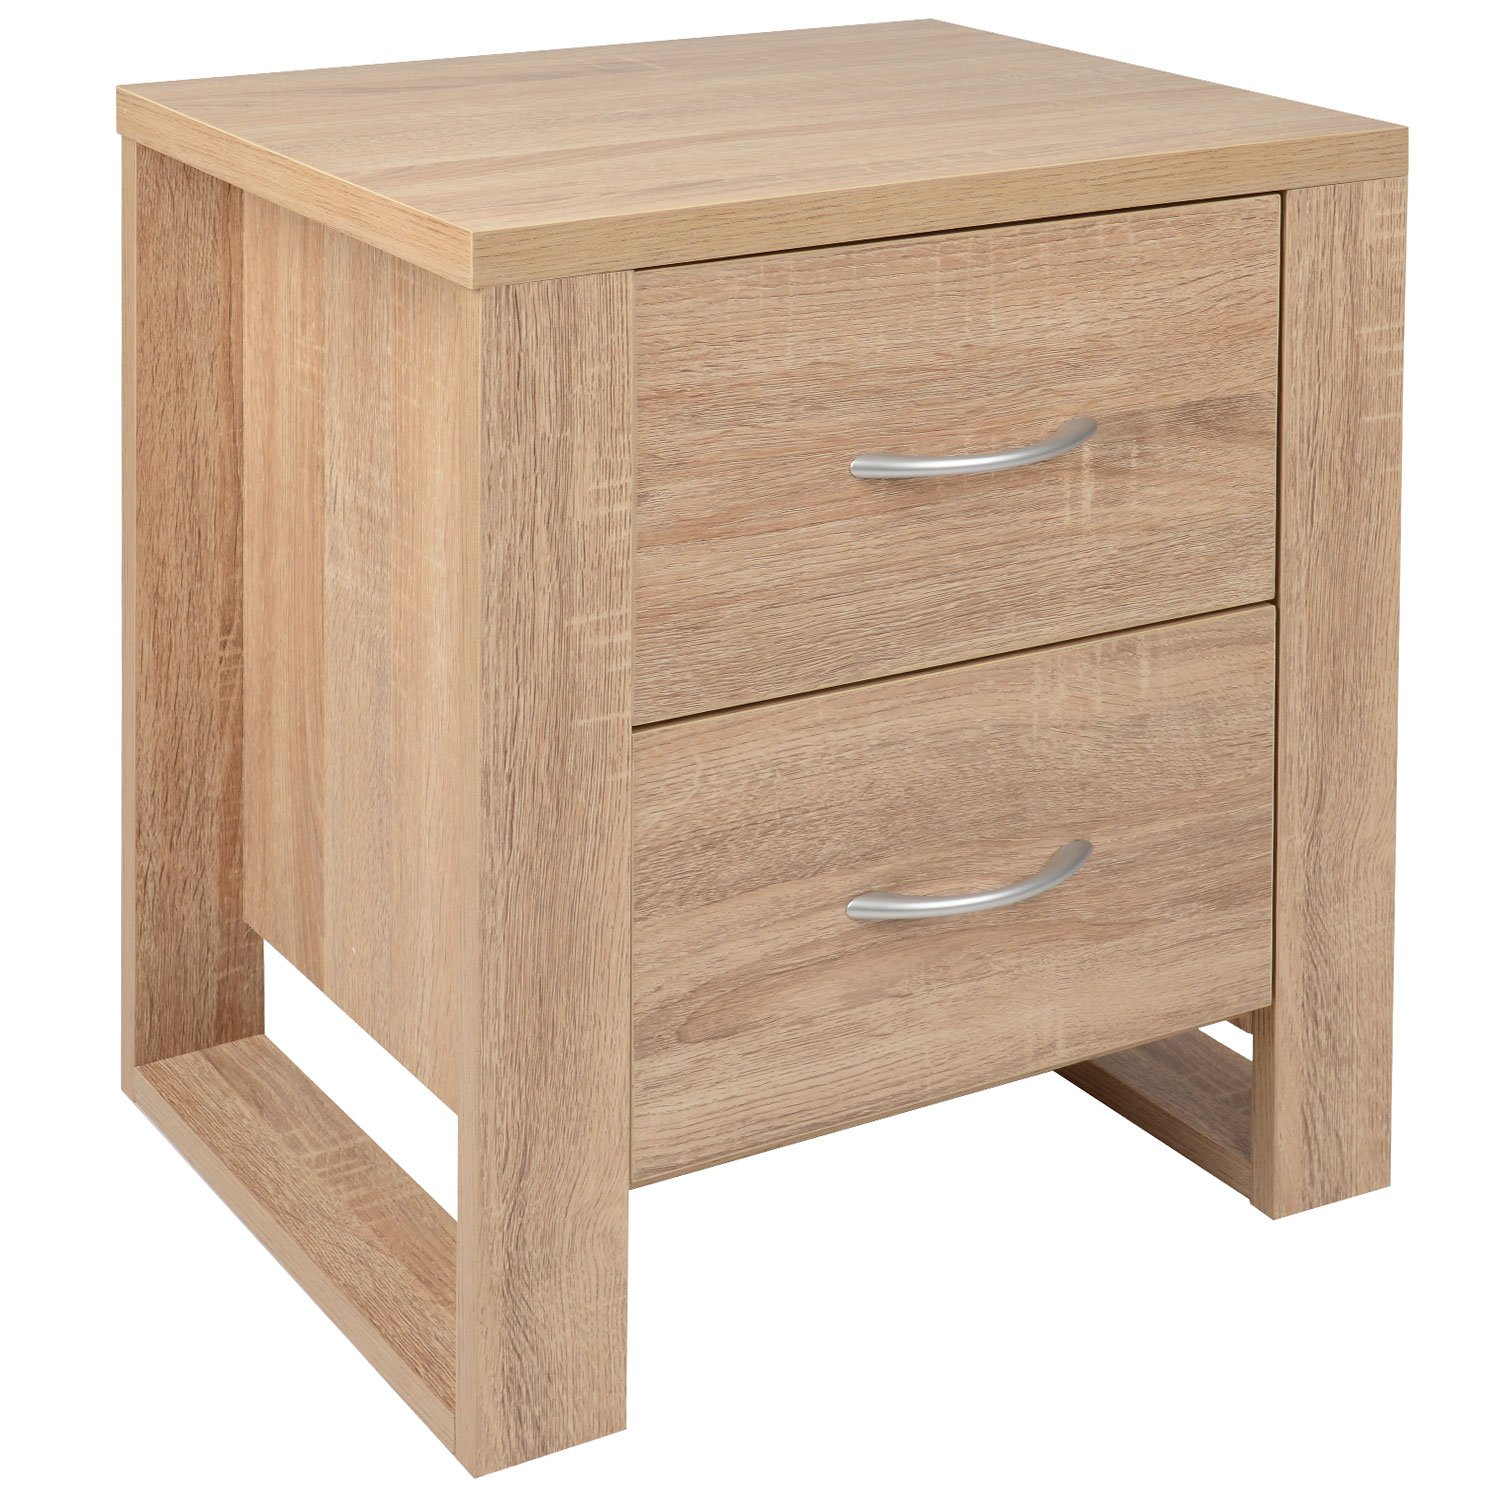 azur ethnicraft drawer oak table bedside nightstand style